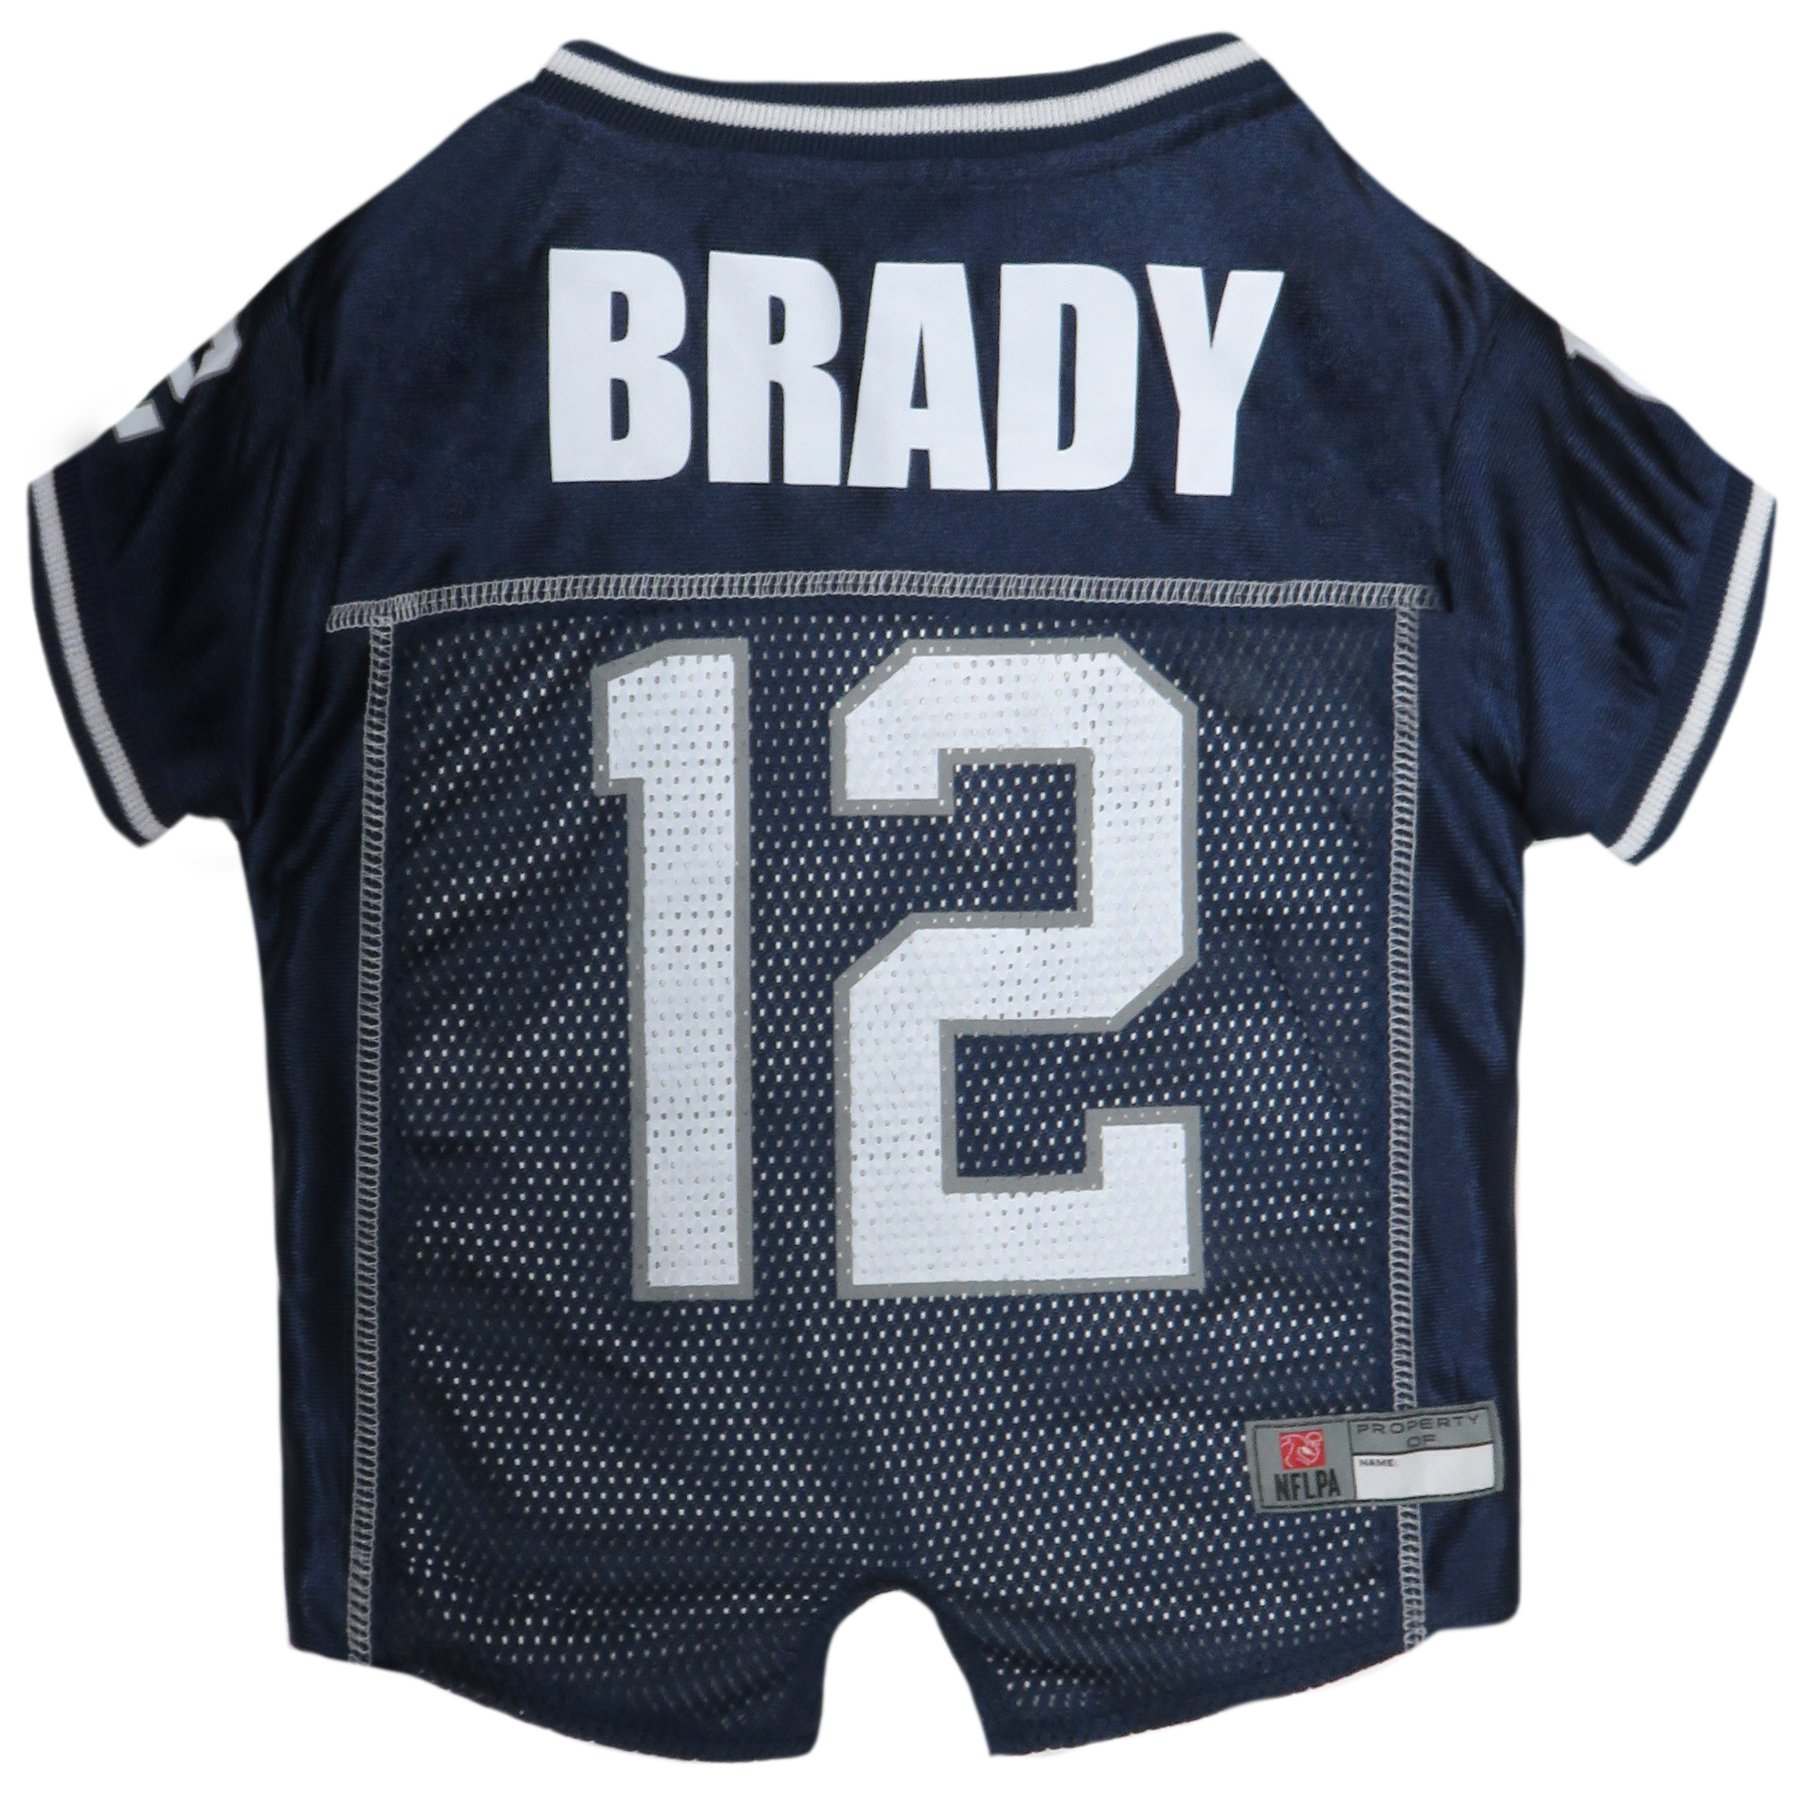 NFL NFLPA DOG JERSEY - TOM BRADY #12 Pet Jersey NEW ENGLAND PATRIOTS Mesh Jersey, Large